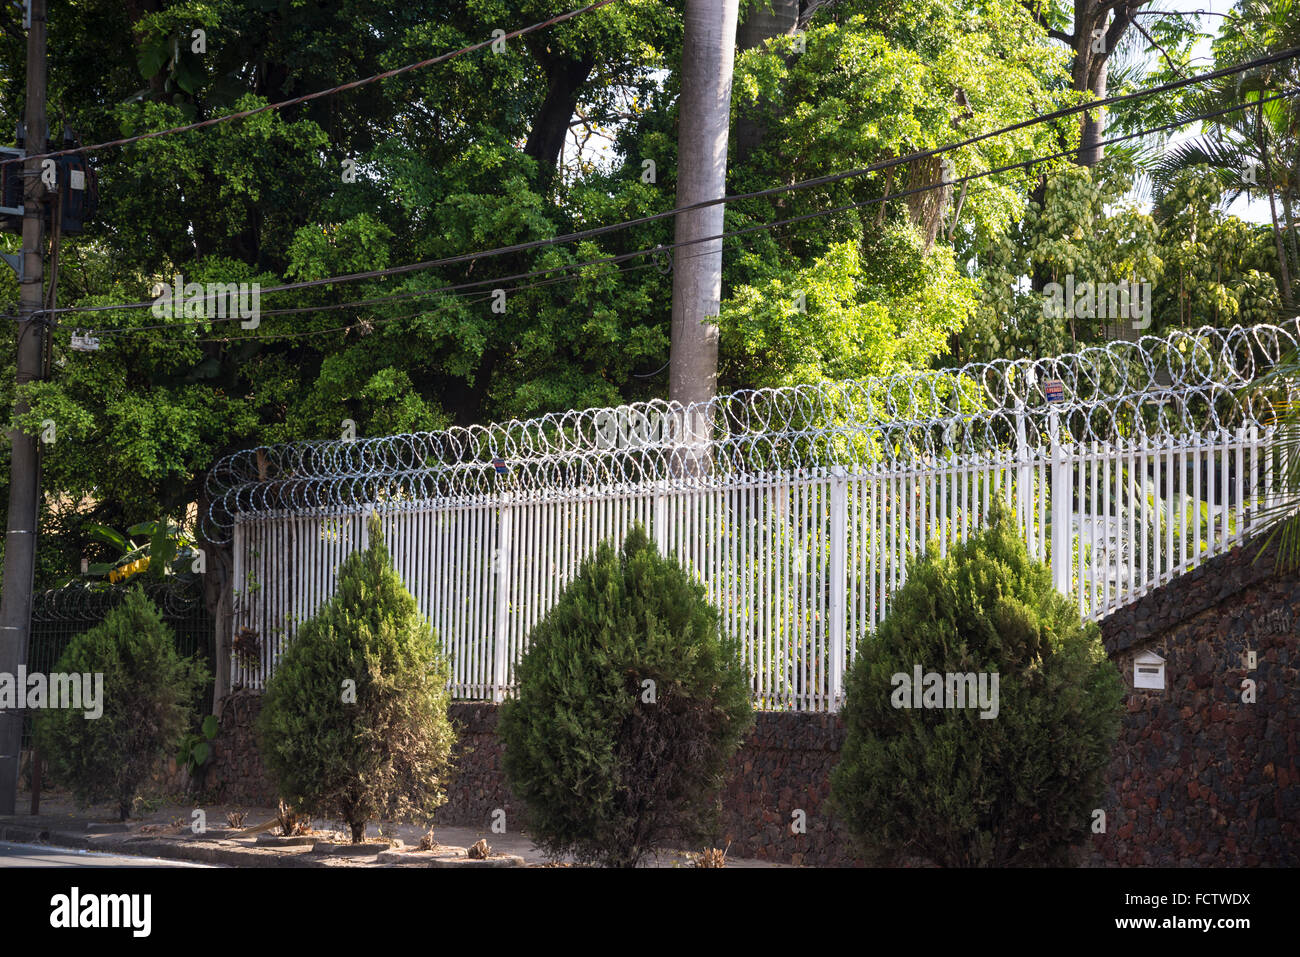 Barbed wire fence of wealthy residential property, Pampulha, Belo Horizonte, Minas Gerais, Brazil - Stock Image